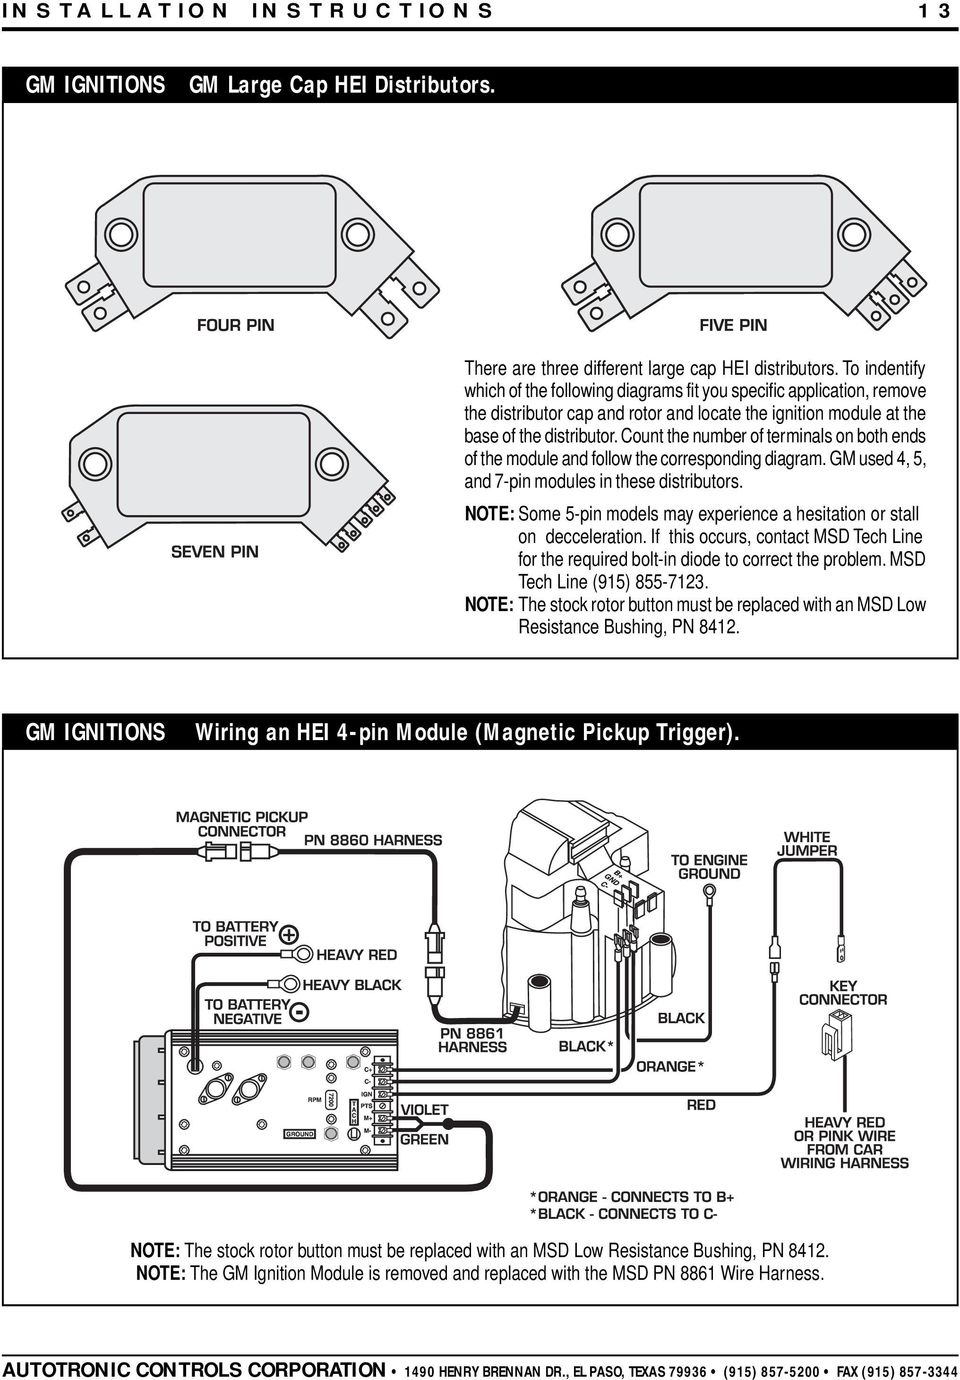 Msd 7al 2 Ignition Pn 7220 7224 7226 Pdf 1965 Chevy Truck Distributor Wiring Count The Number Of Terminals On Both Ends Module And Follow Corresponding Diagram 14 Installation Instructions Gm Ignitions